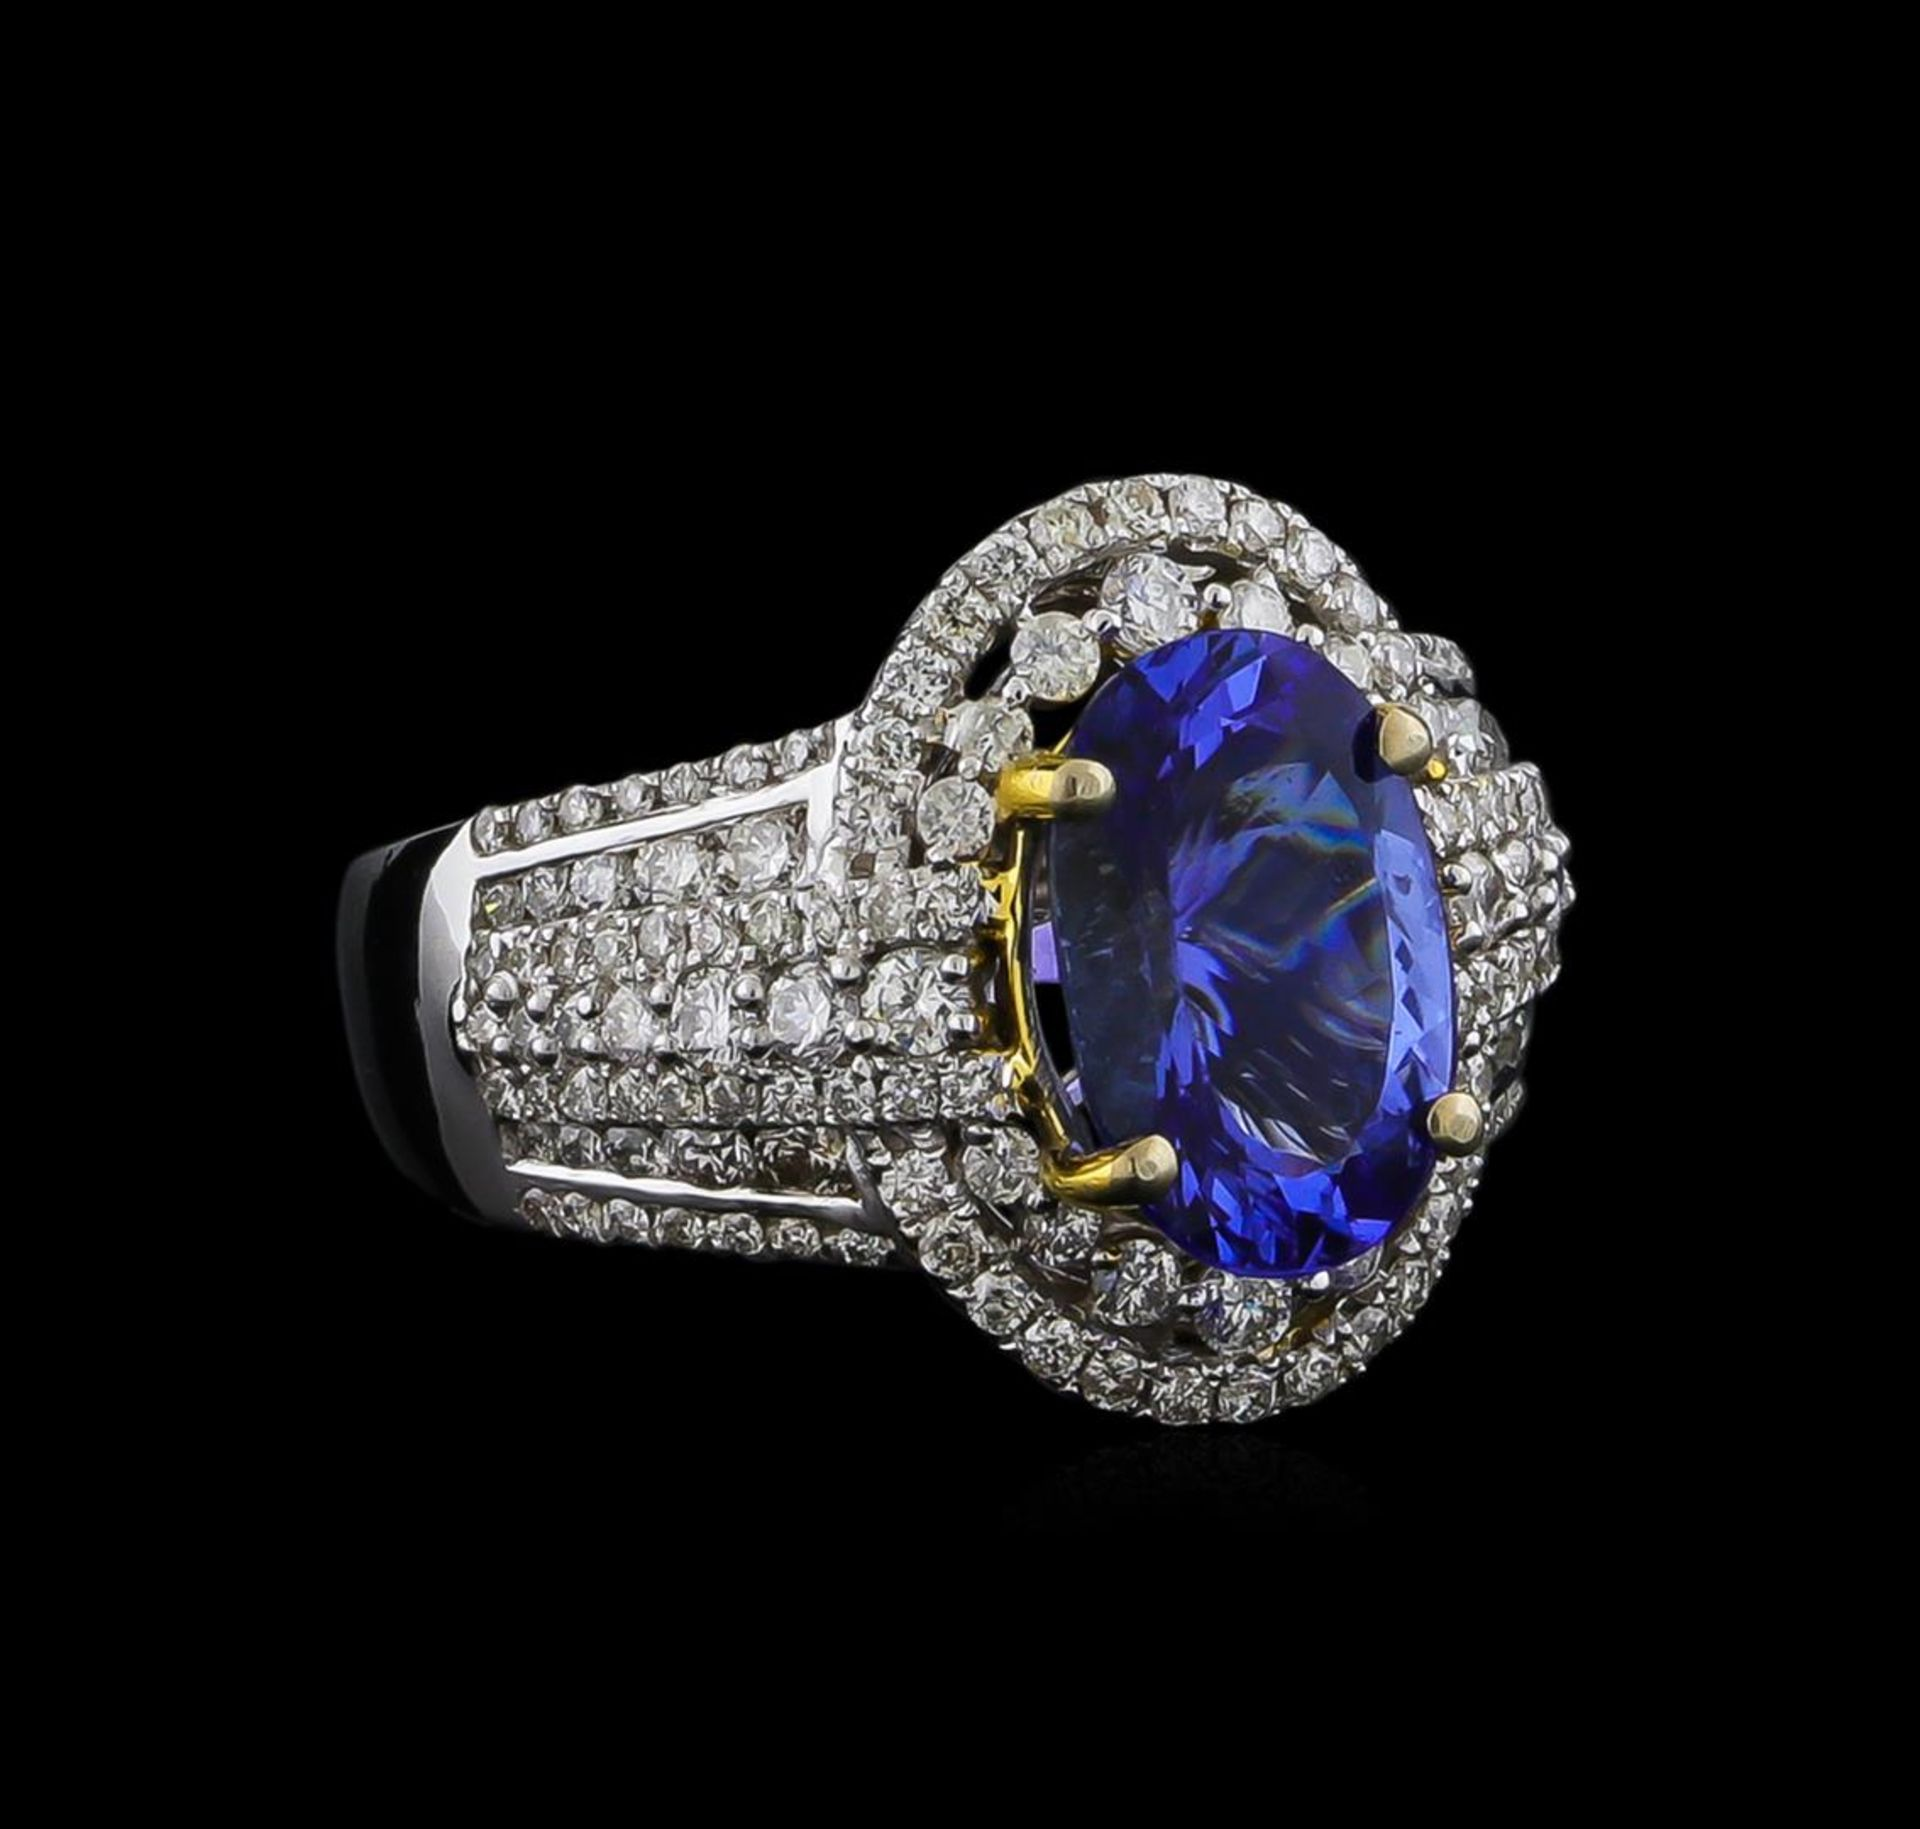 14KT Two-Tone Gold 4.12 ctw Tanzanite and Diamond Ring